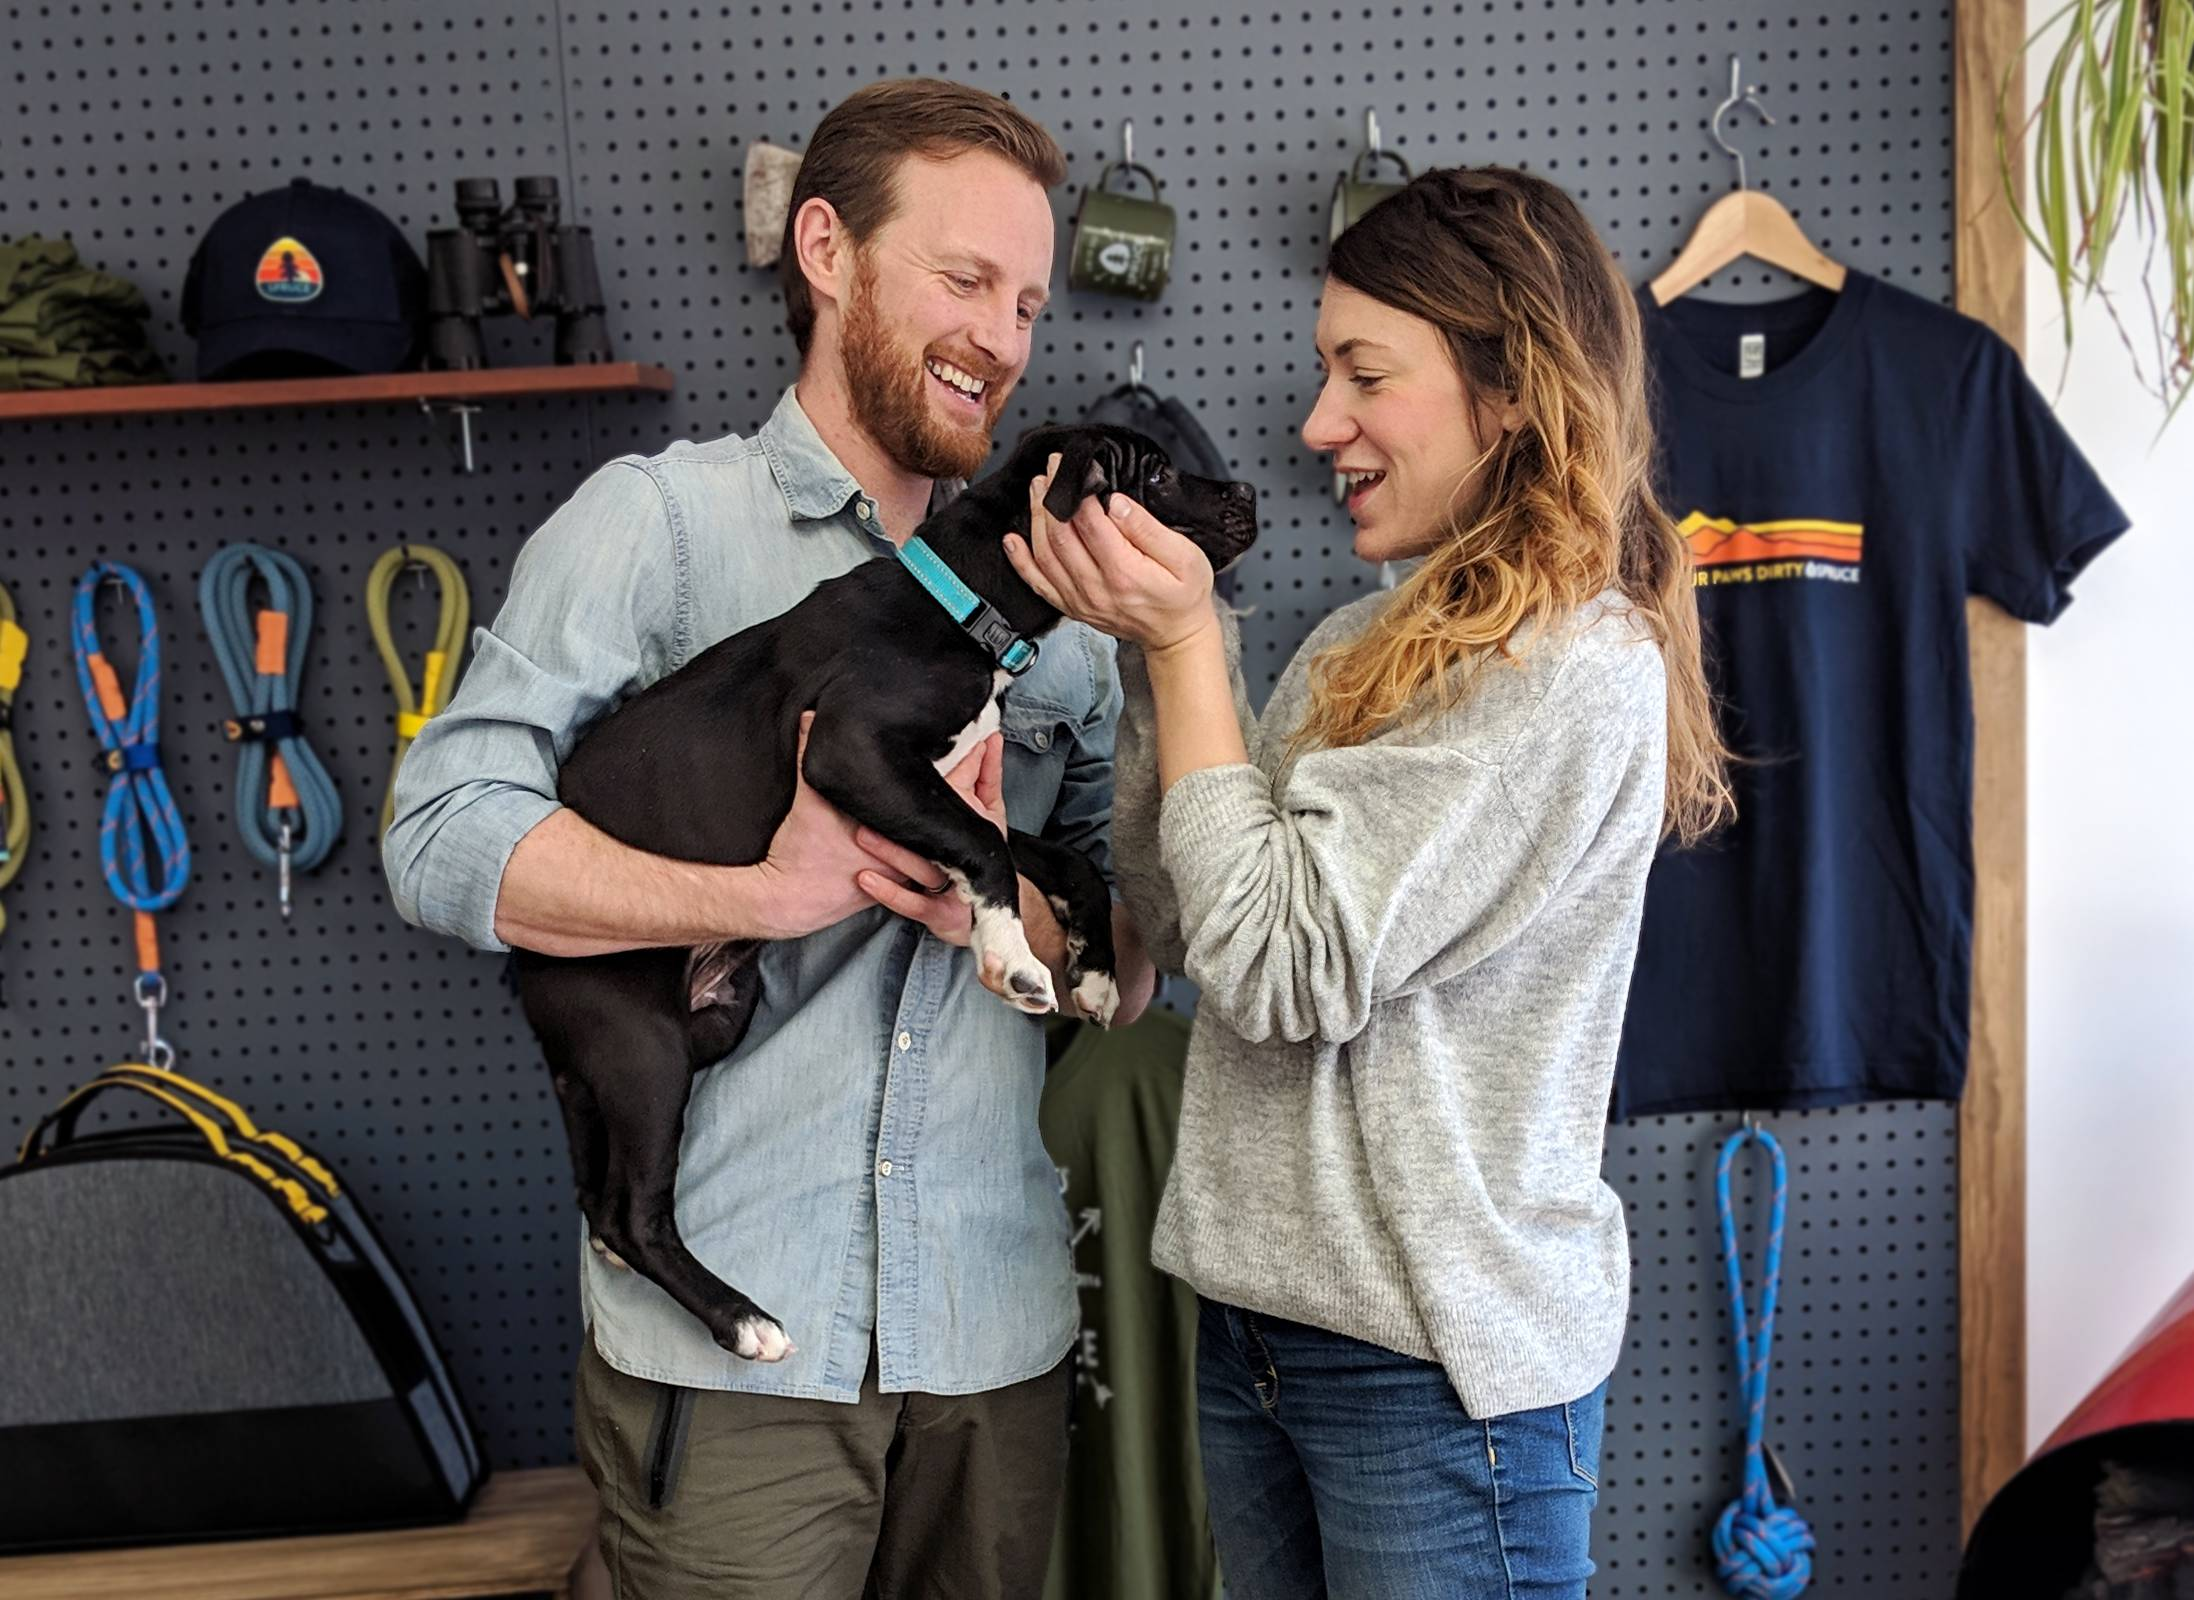 Spruce founders Eli and Leah together holding their puppy